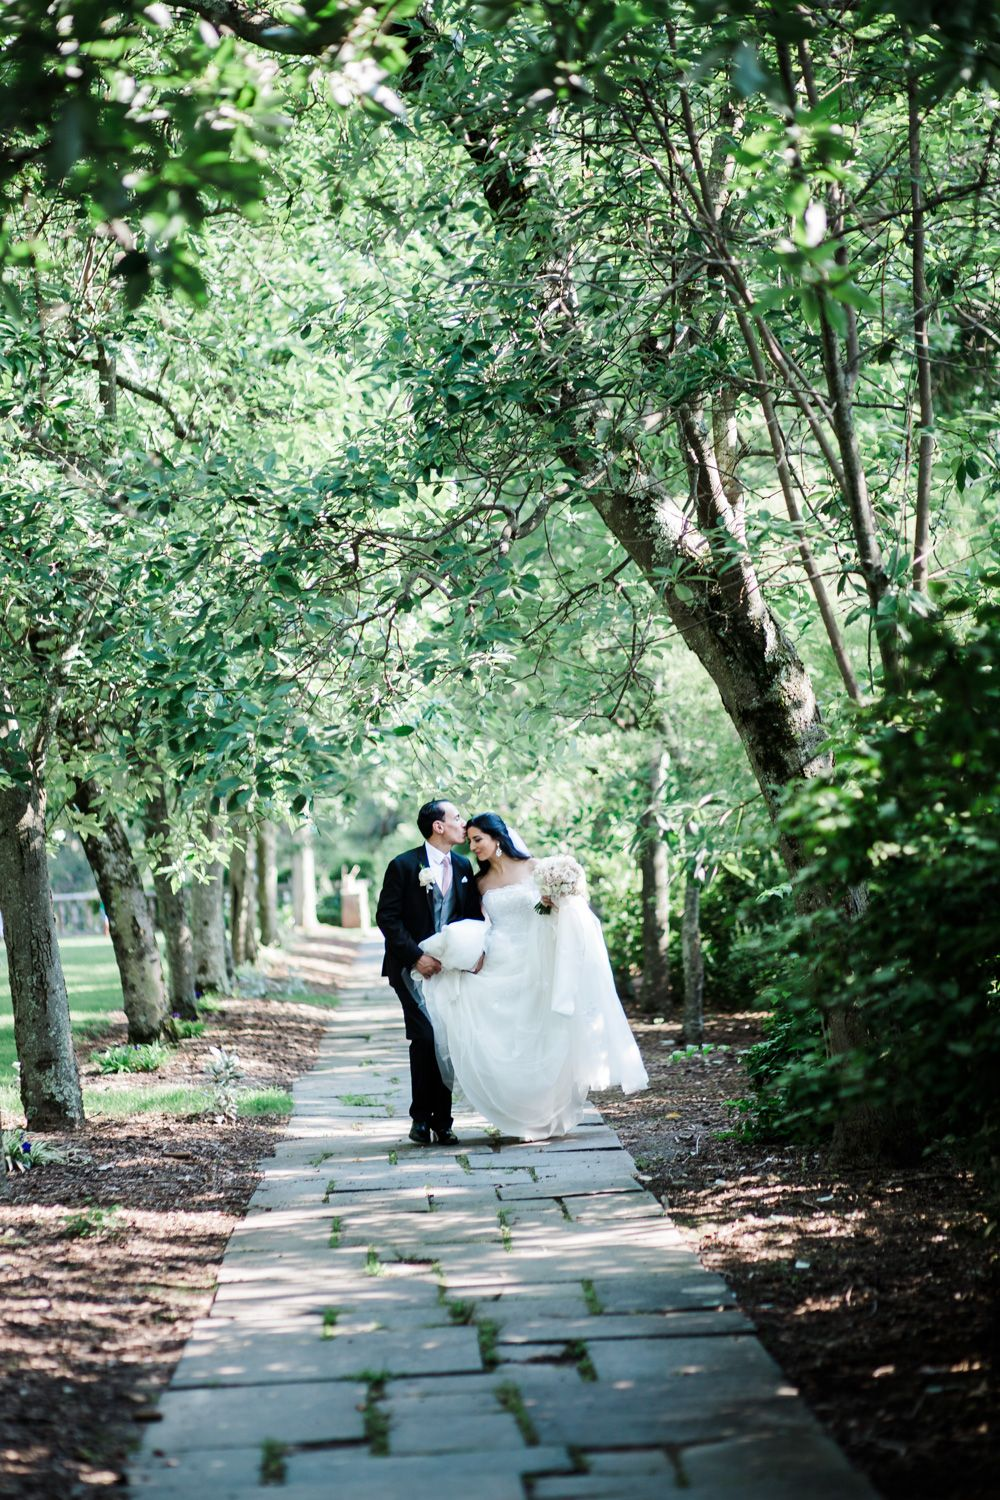 Bride and groom walk down a stone path at the New Jersey Botanical Gardens